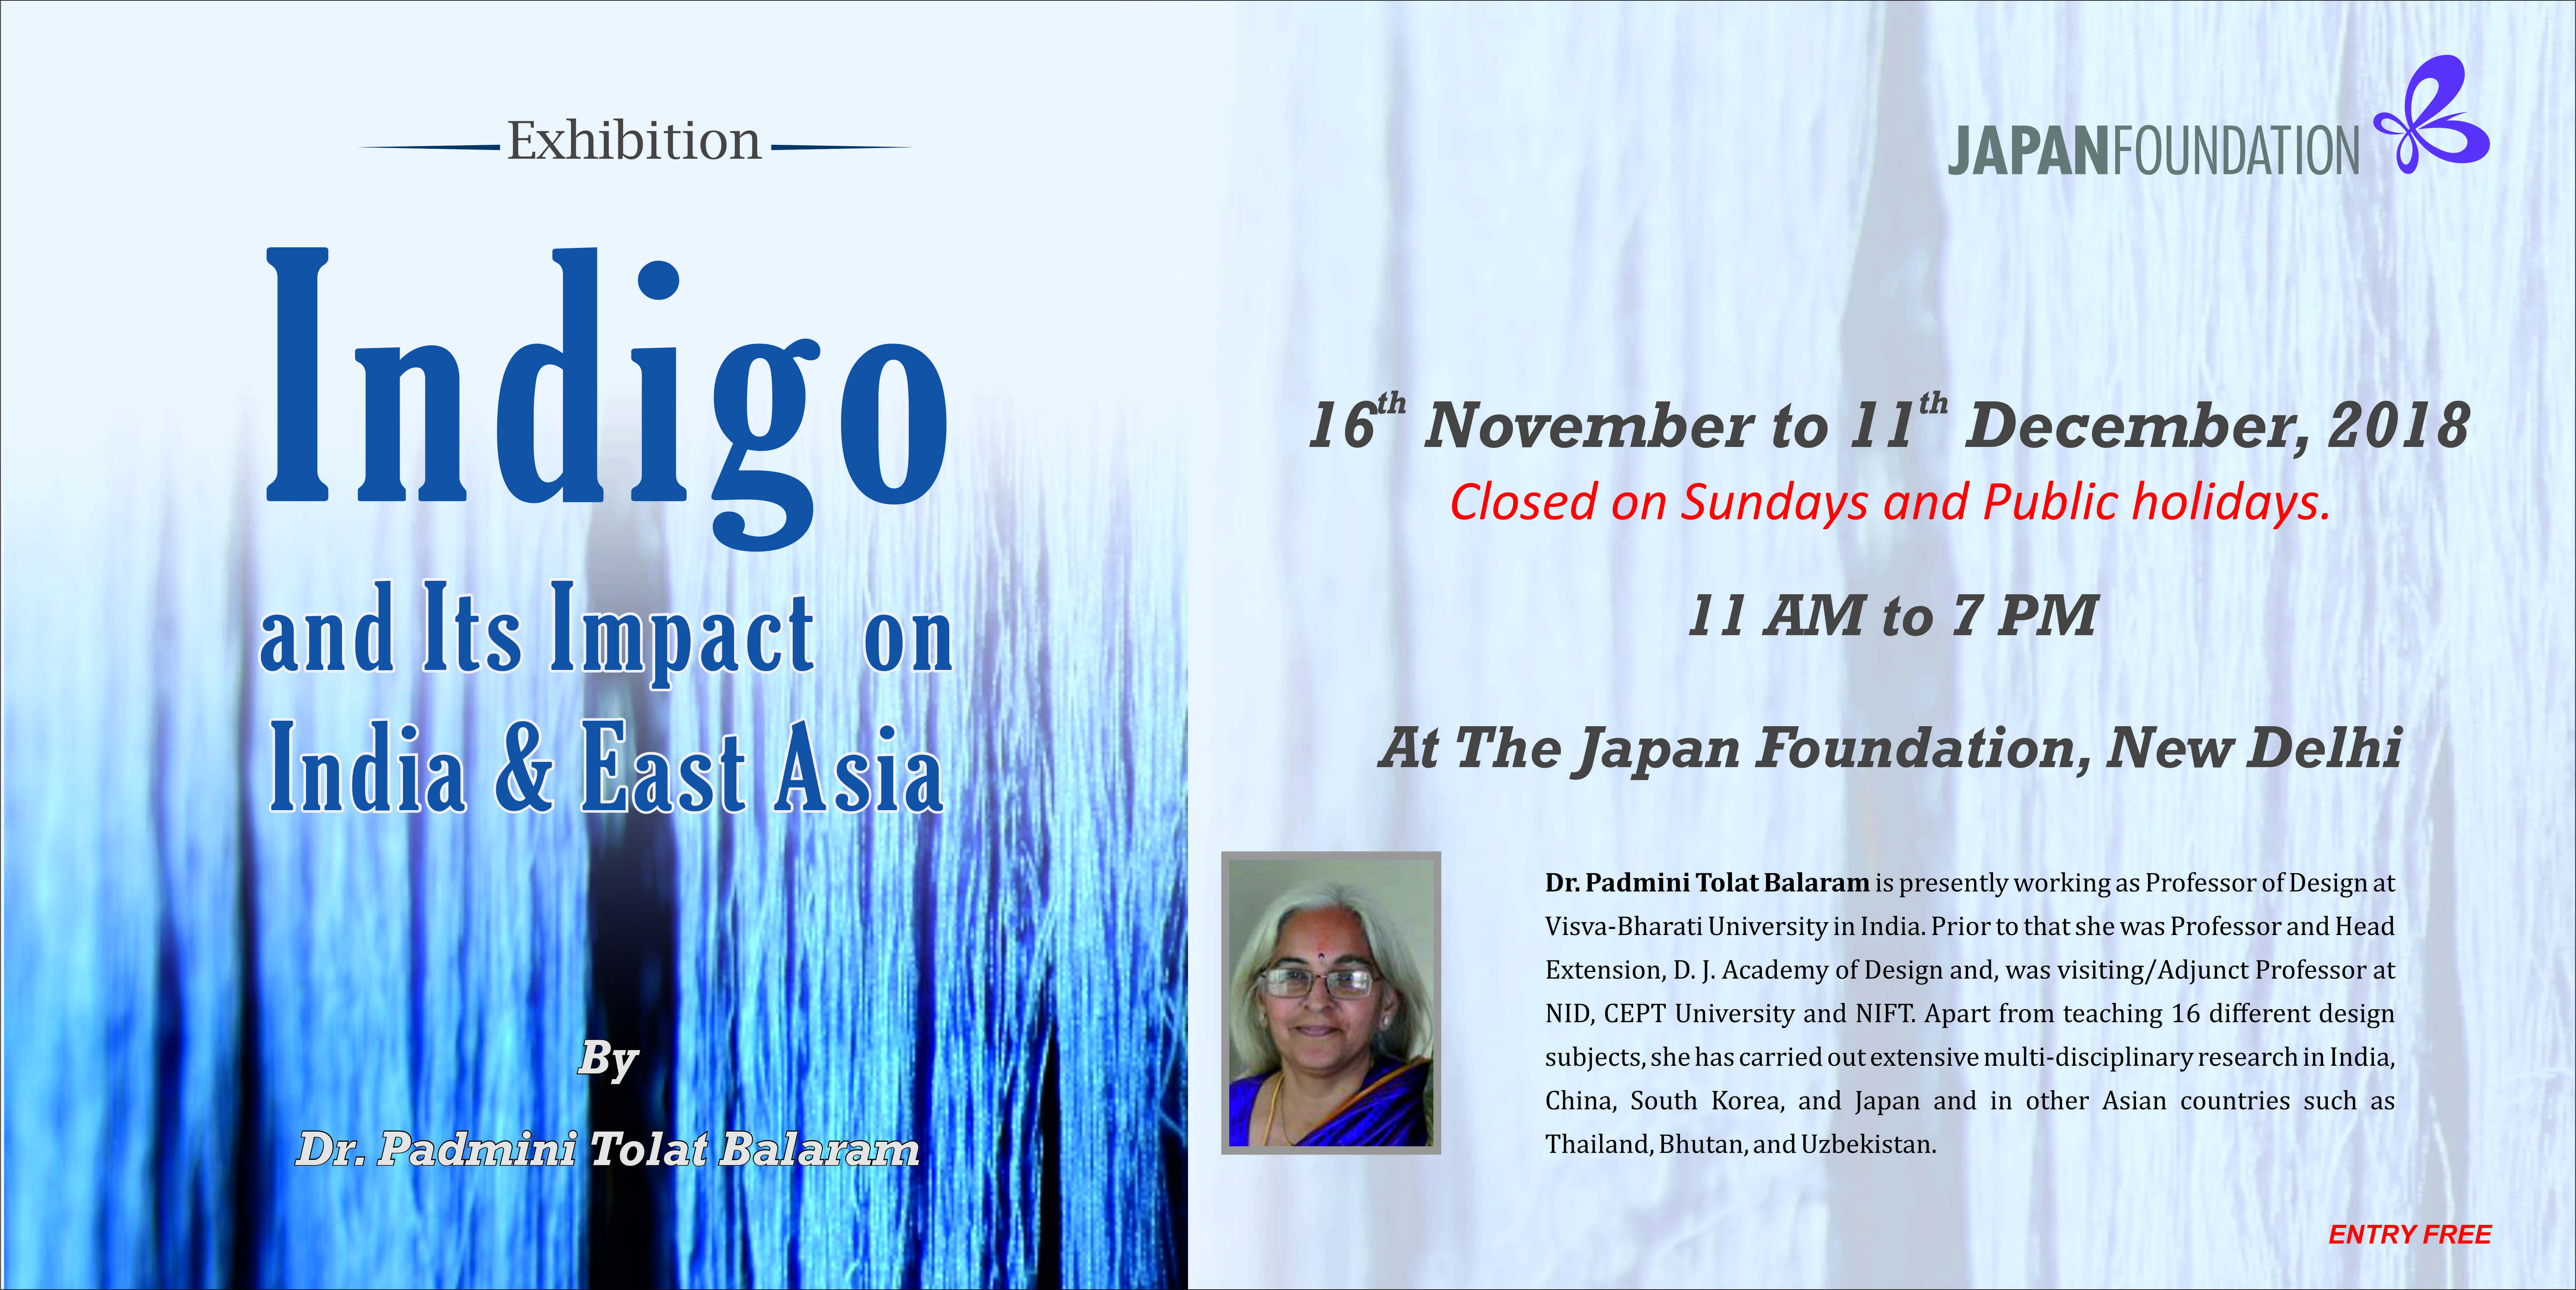 Exhibition: Indigo and Its Impact on India & East Asia